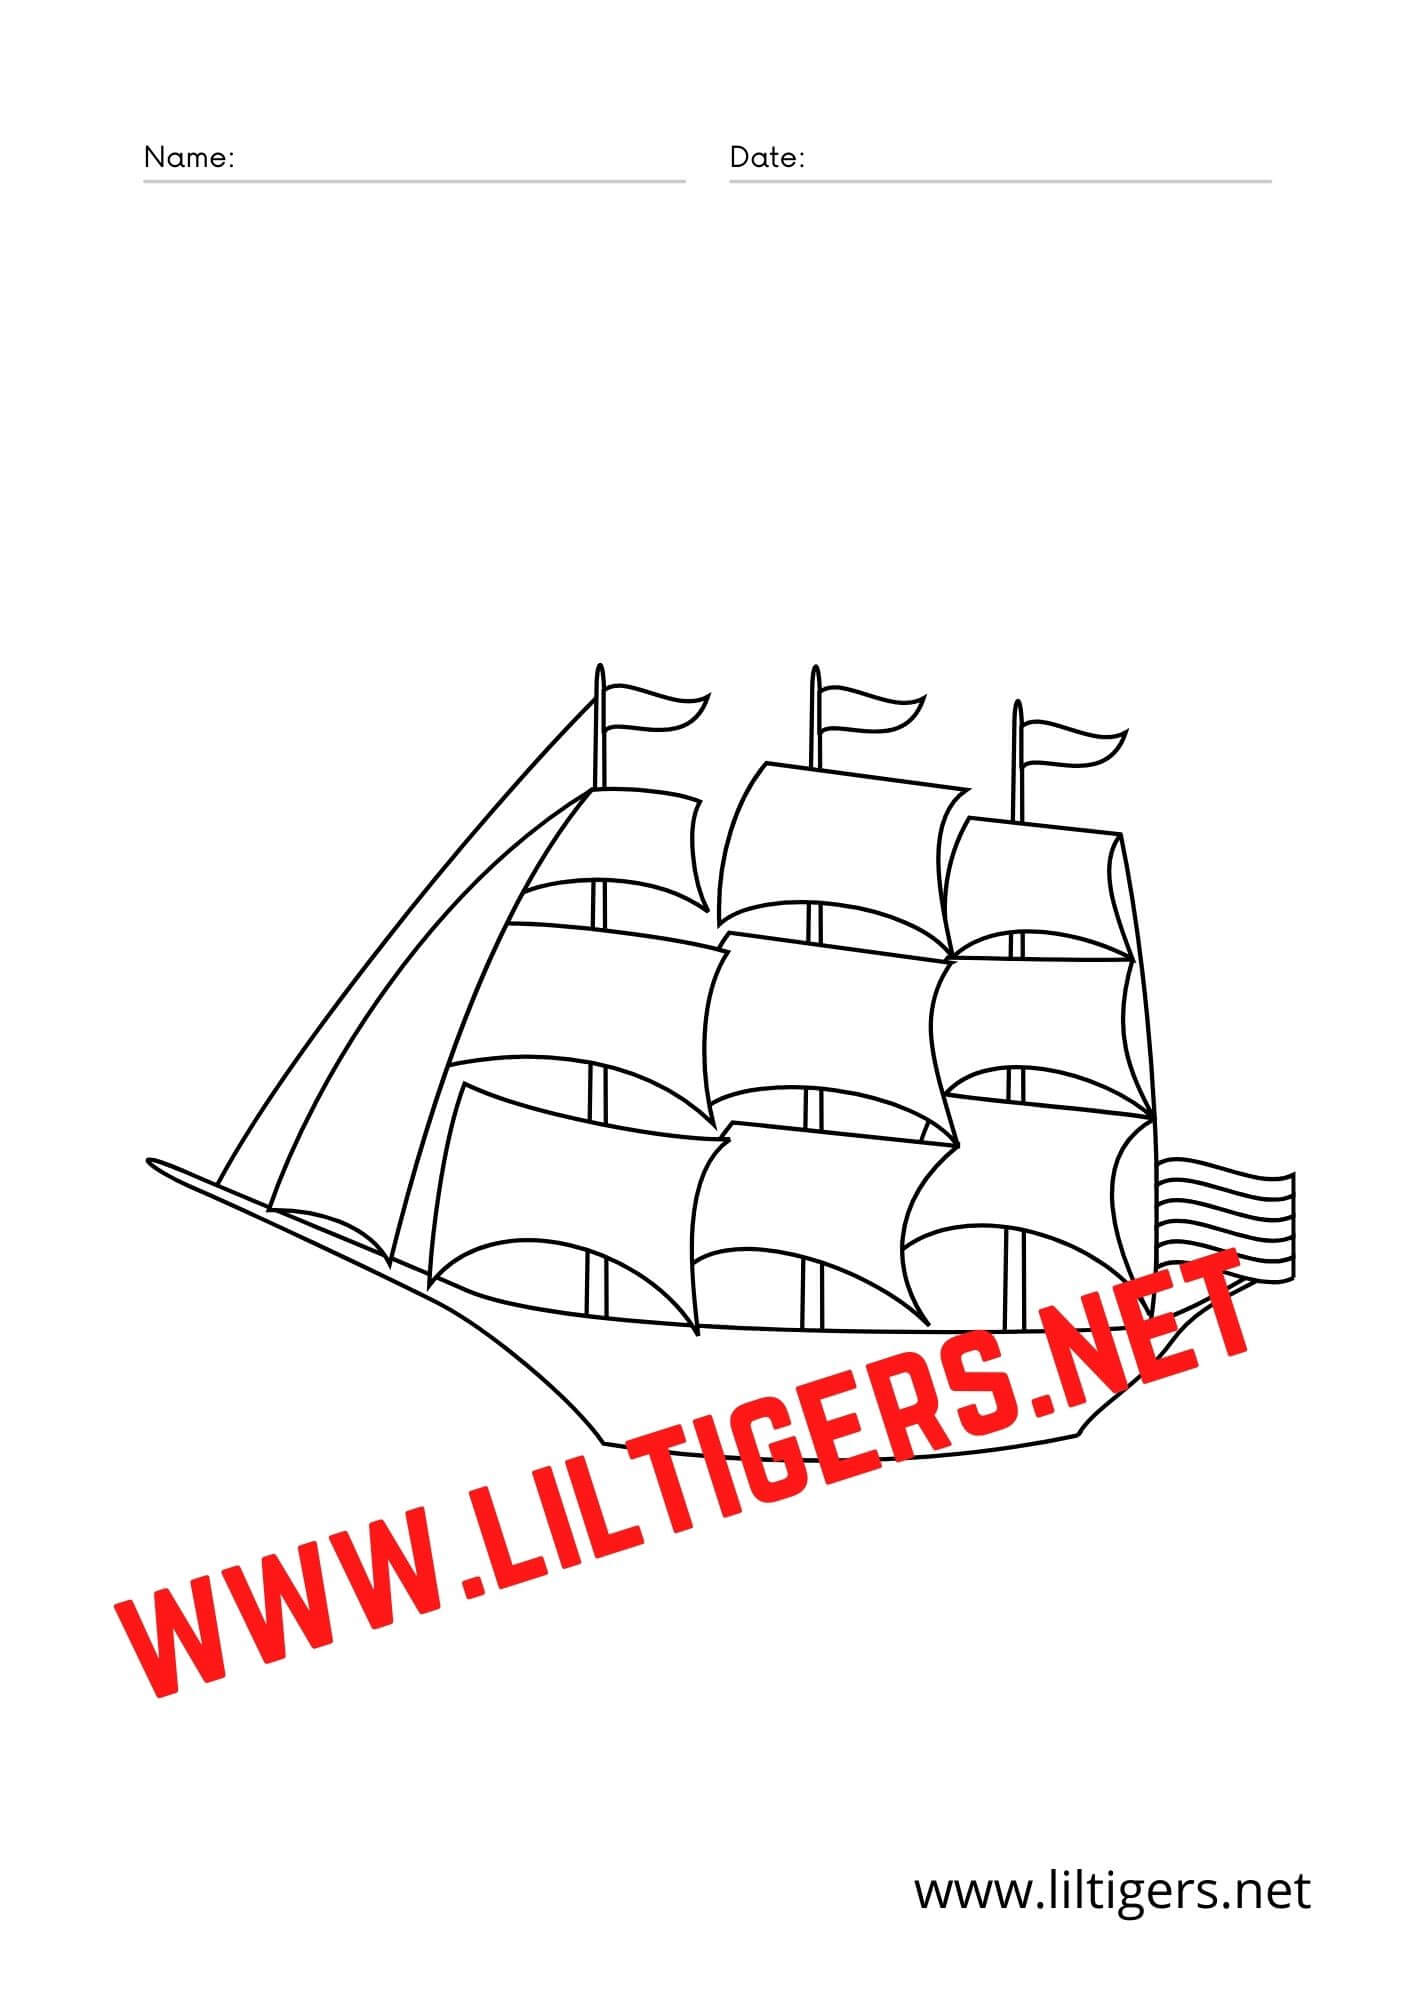 Pirate ship coloring pages free